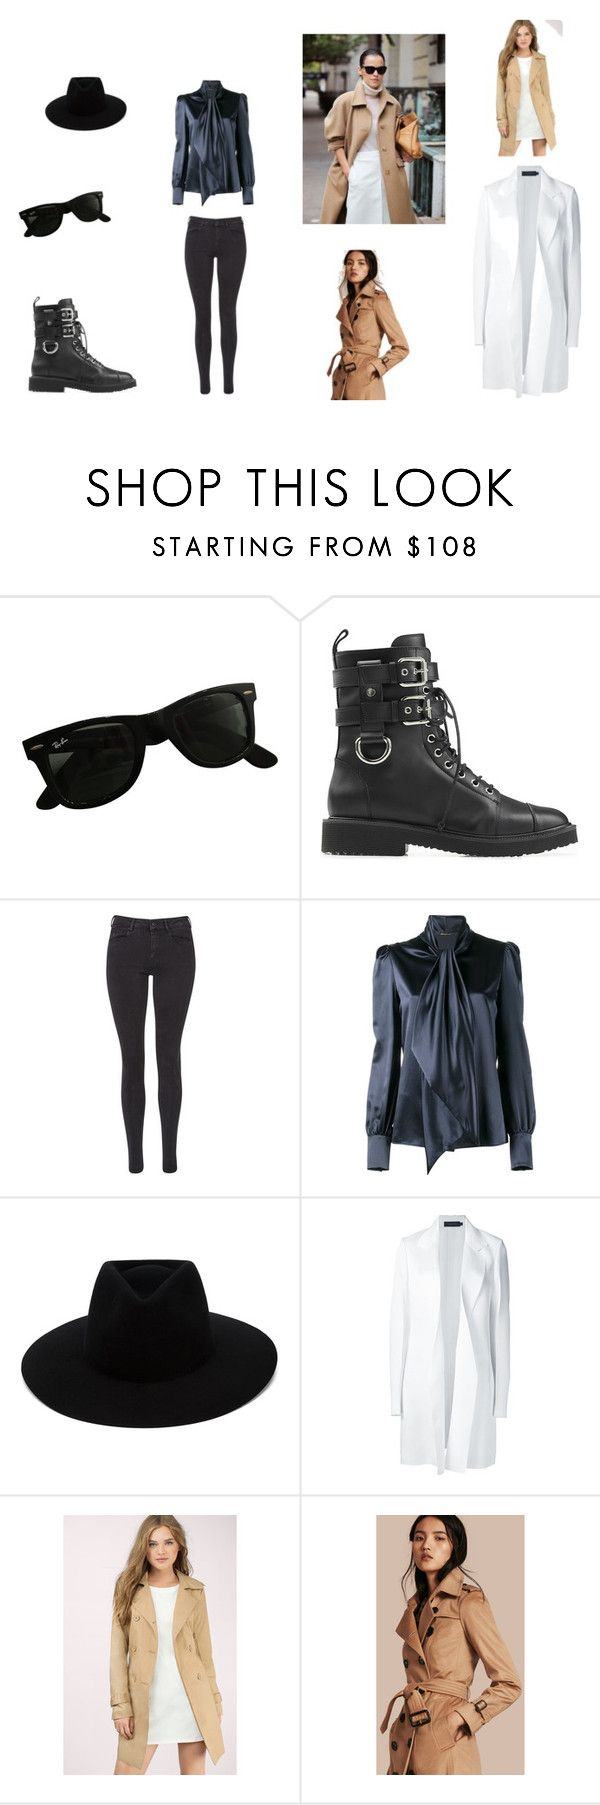 Nikshen Style by len-bon on Polyvore featuring moda, Yves Saint Laurent, Calvin Klein Collection, Burberry, Tobi, Maison Scotch, Giuseppe Zanotti, rag & bone and Ray-Ban